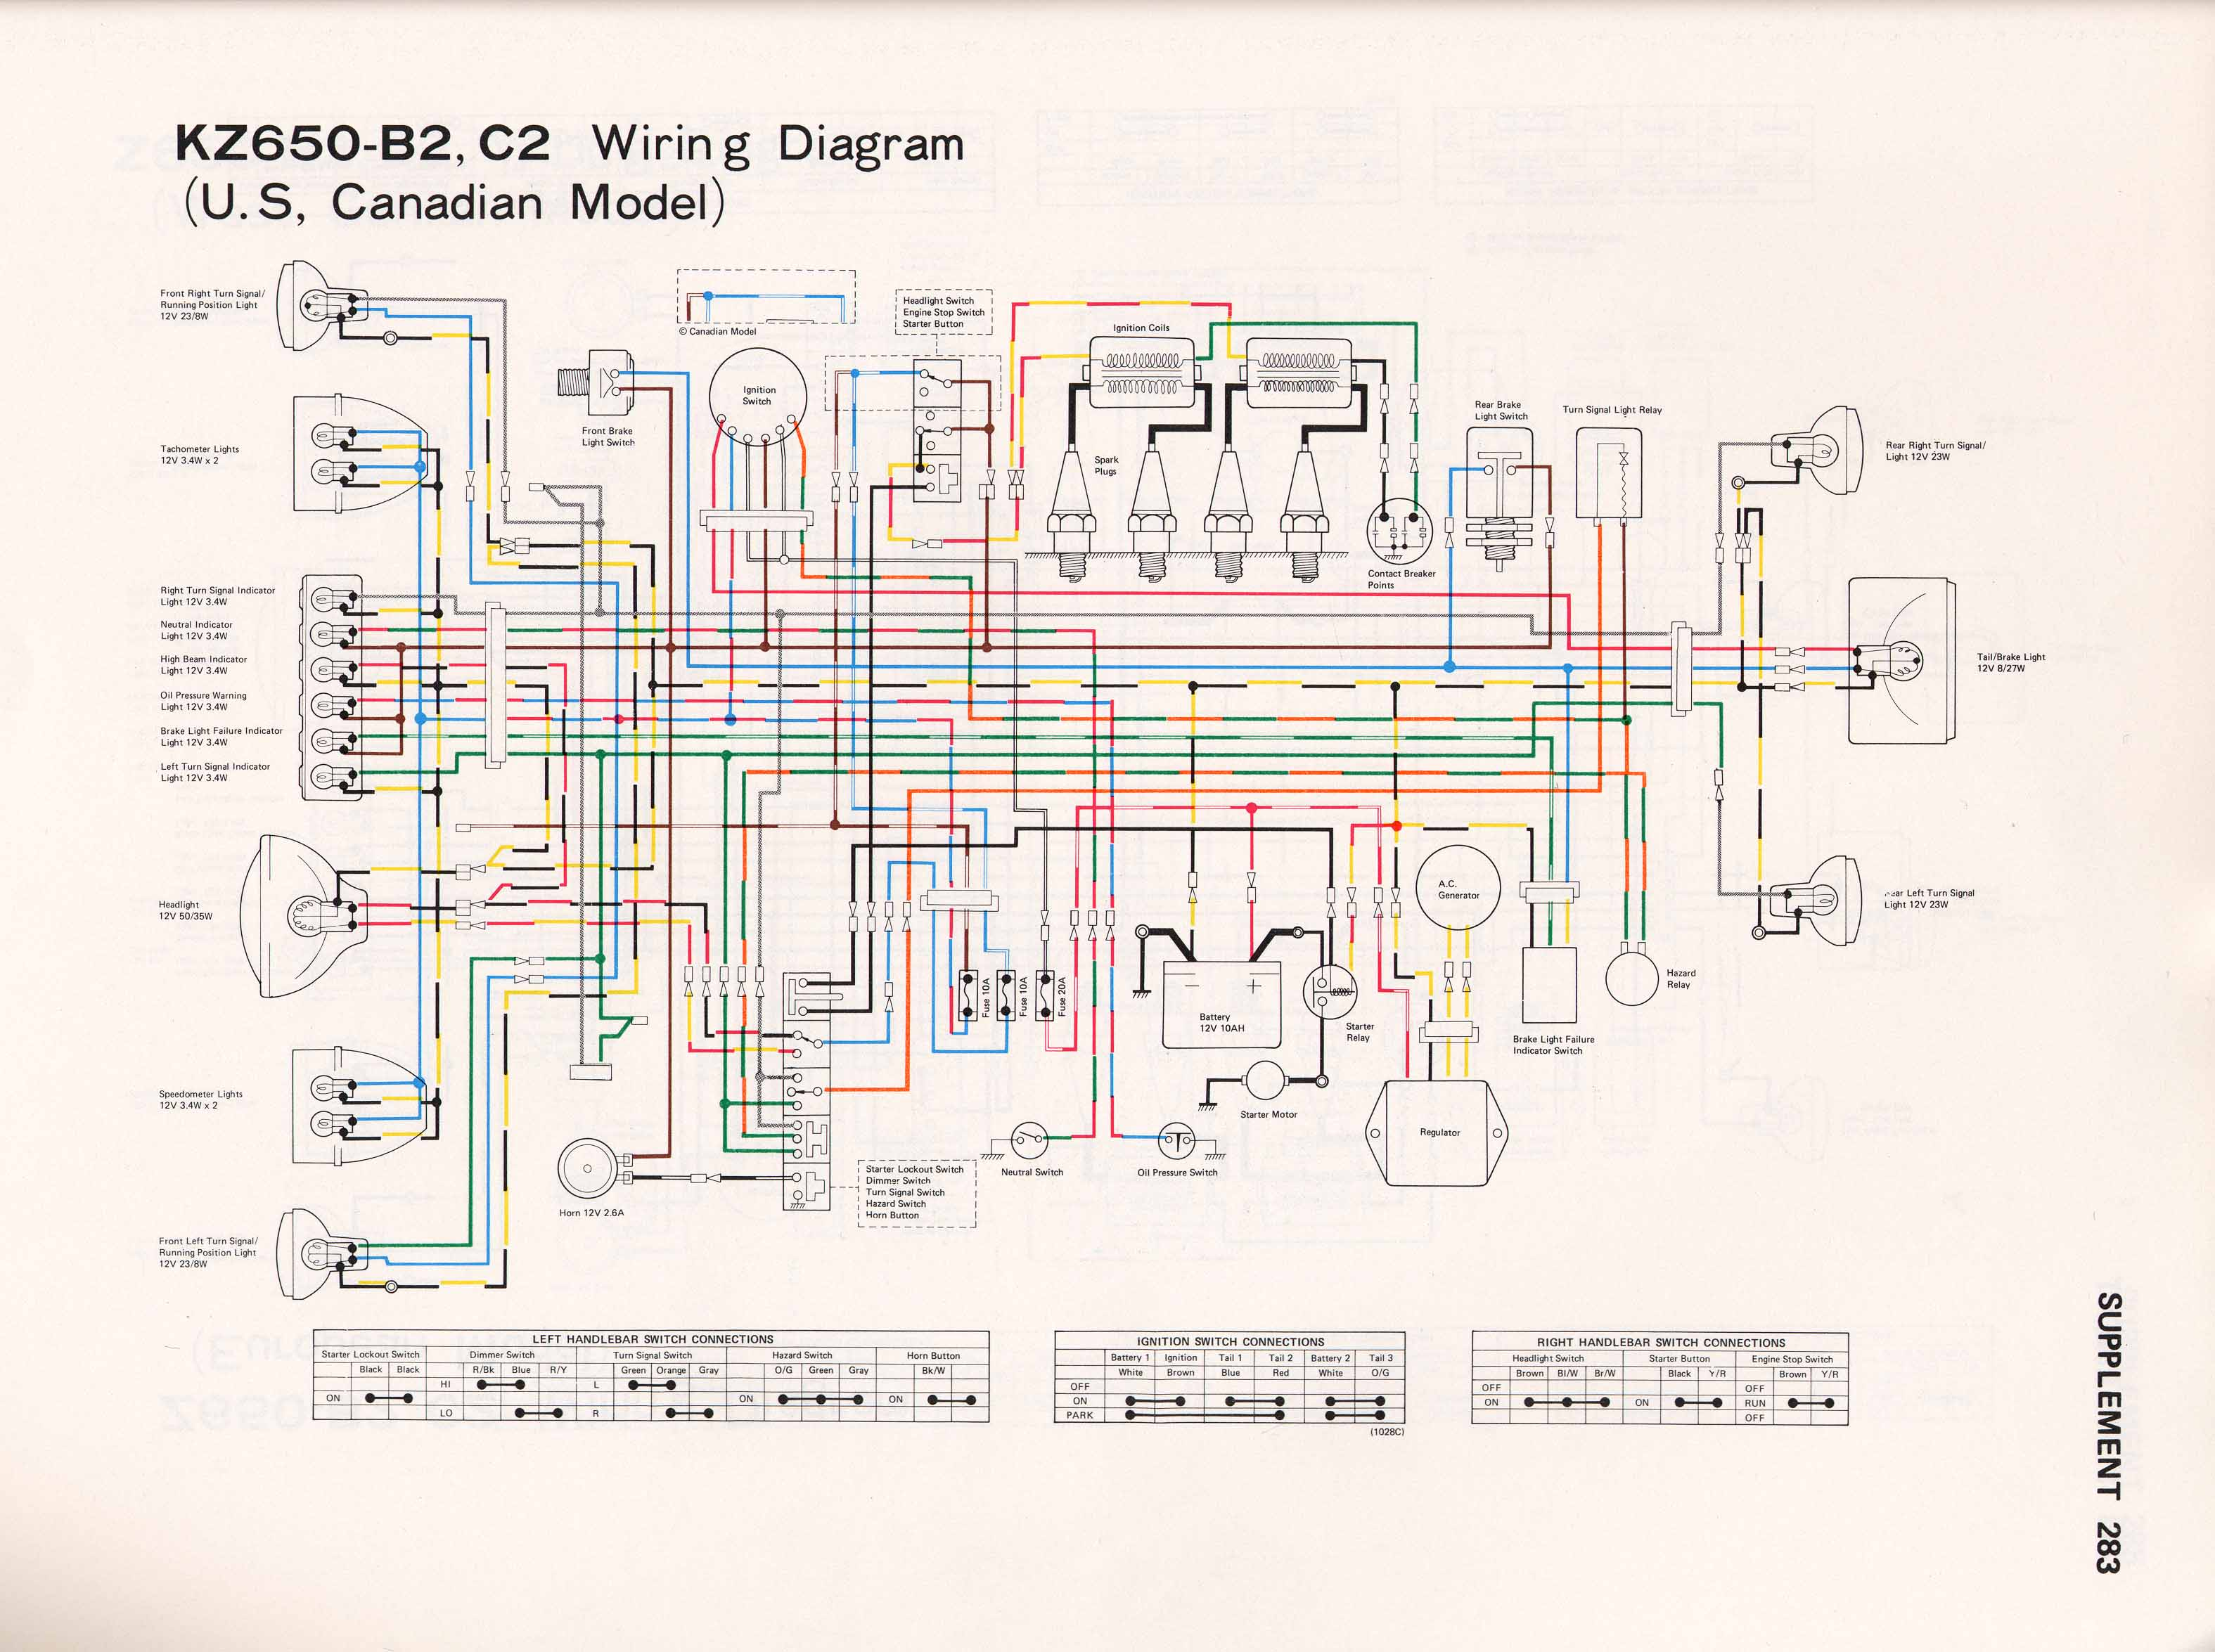 Kz650info Wiring Diagrams Switched Electrical Schematic Diagram Kz650 B1 B2